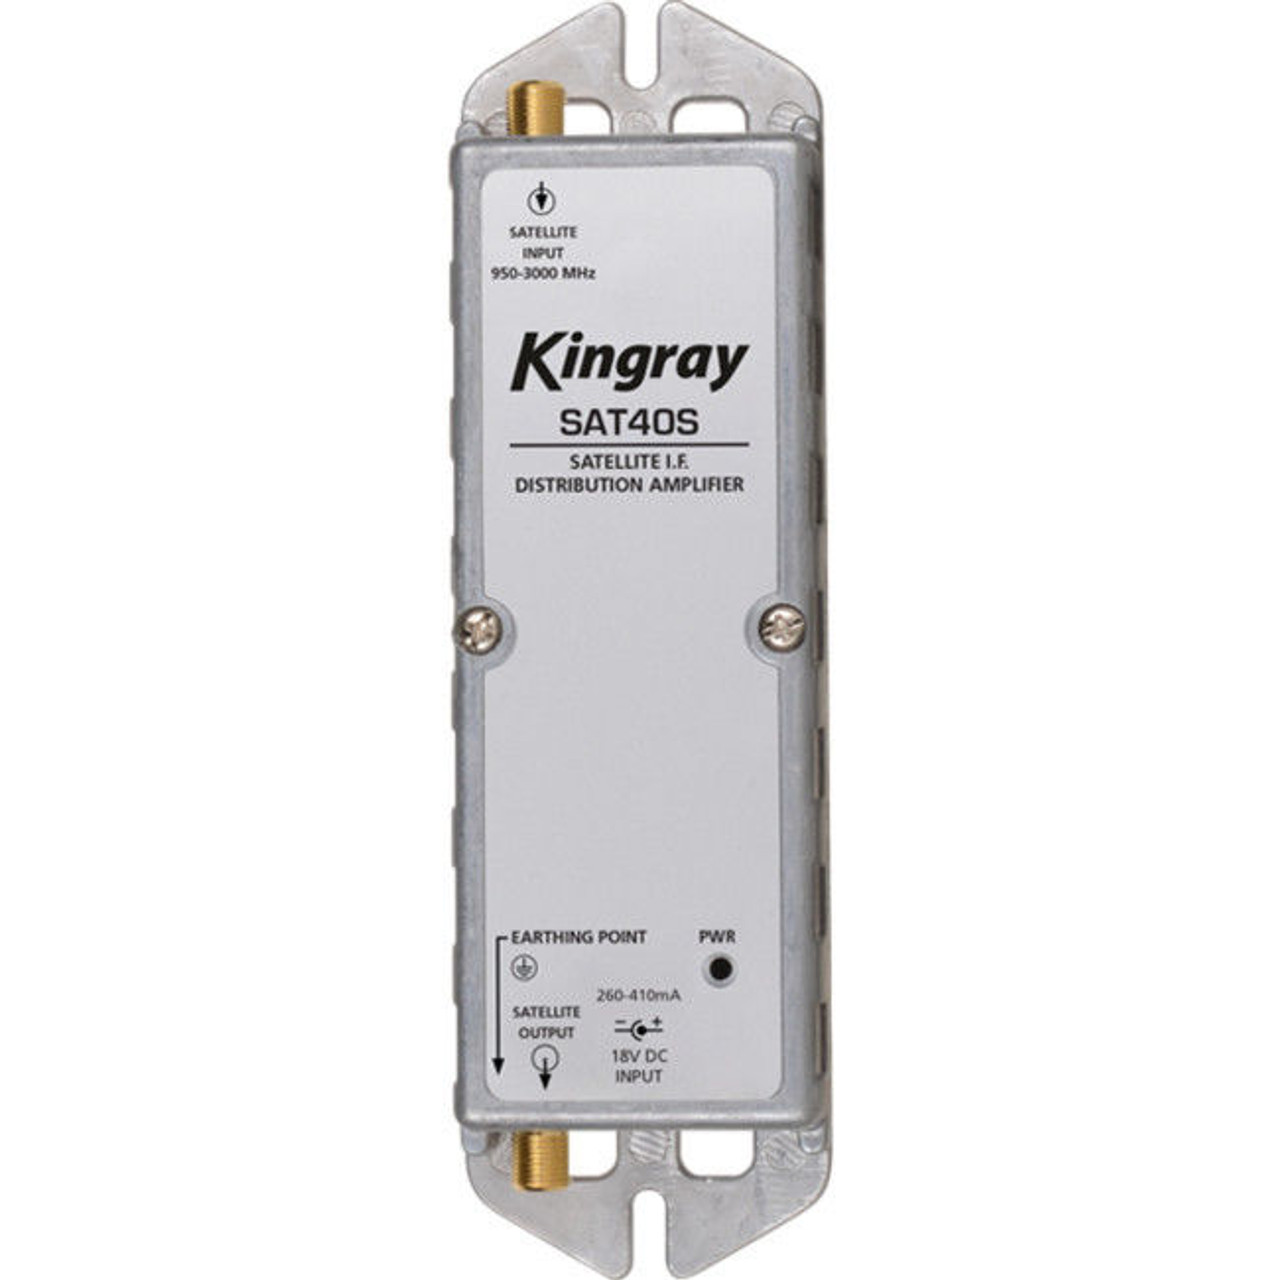 Kingray SAT40S F-Type Satellite Distribution Amplifier